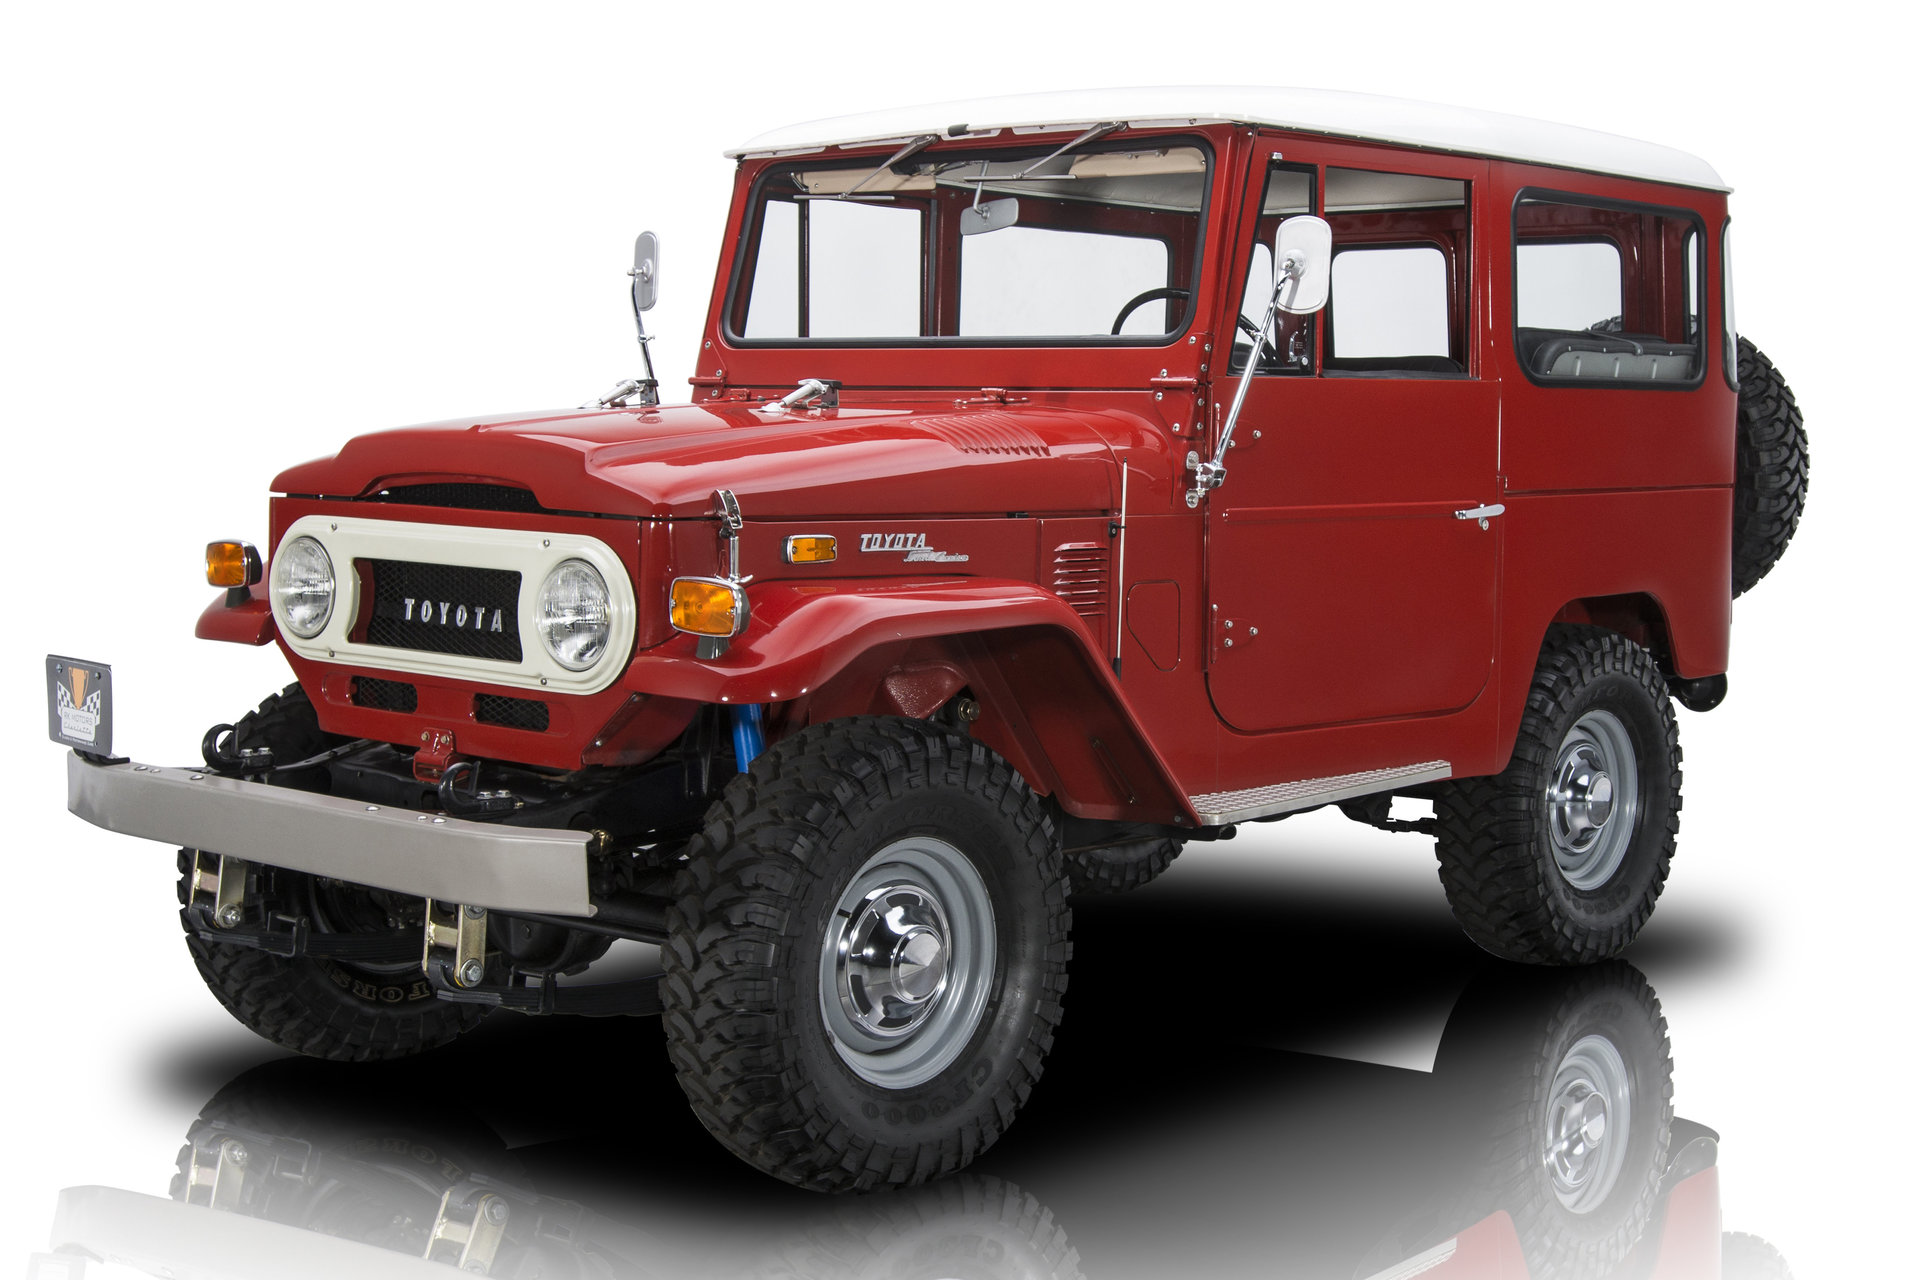 136082 1972 toyota land cruiser rk motors classic and performance cars for sale. Black Bedroom Furniture Sets. Home Design Ideas